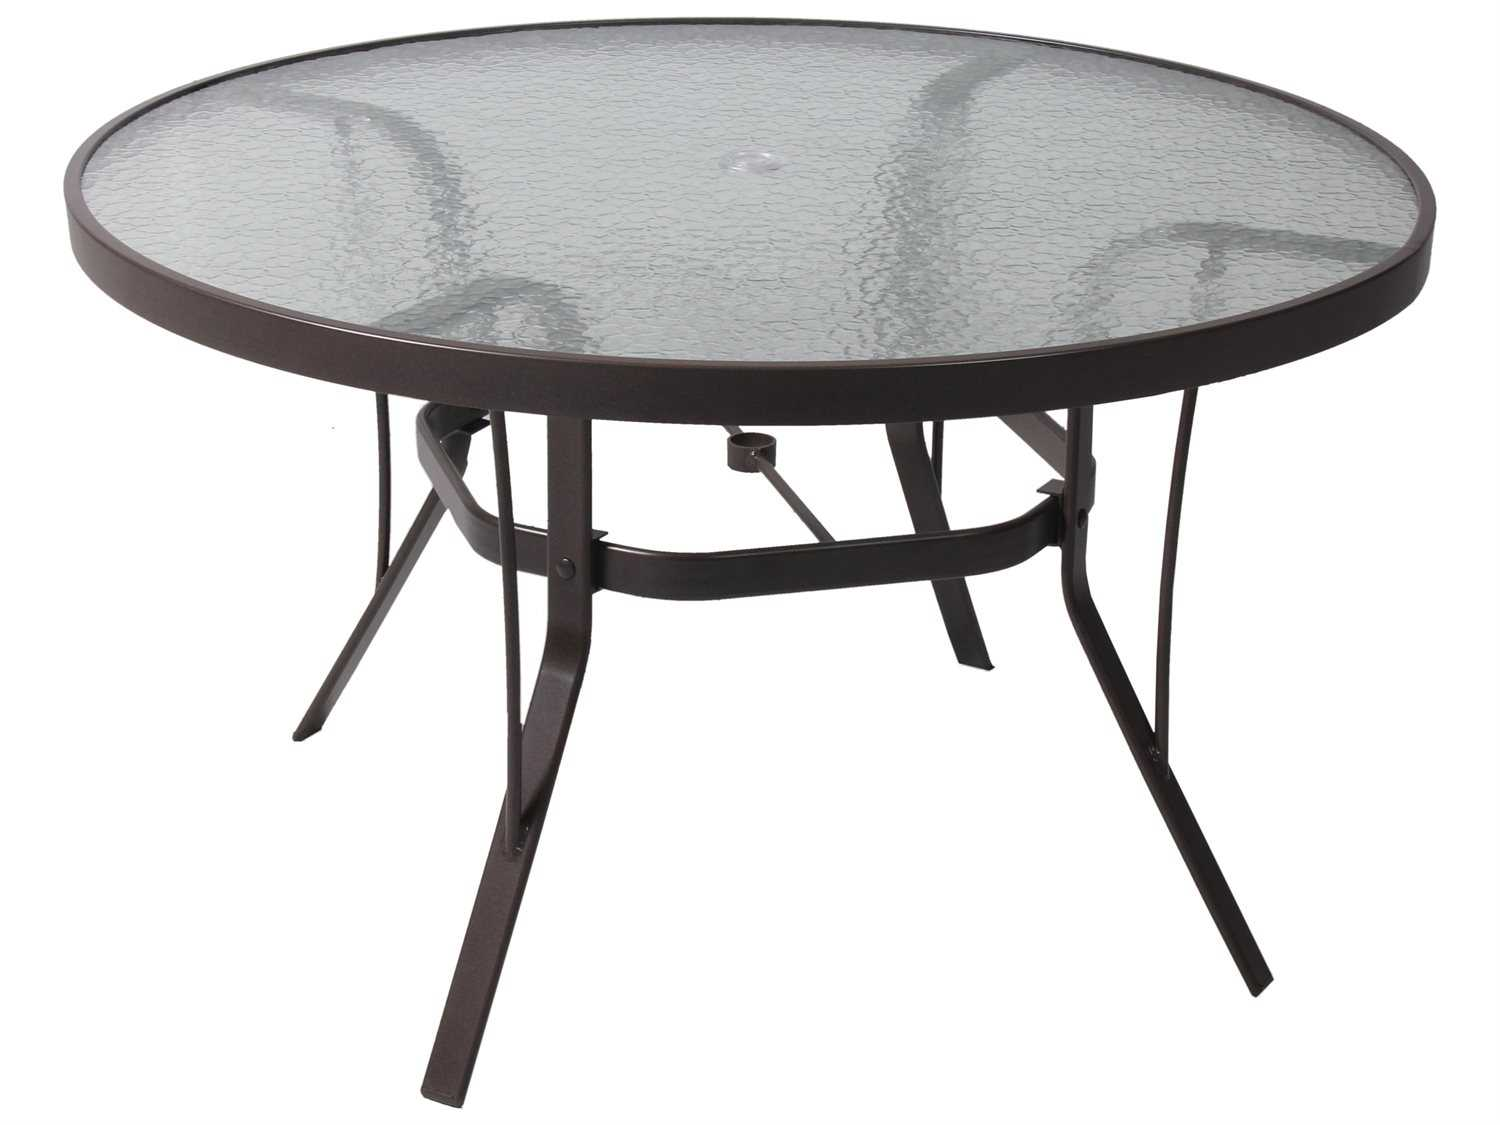 Suncoast cast aluminum 36 39 39 round glass top dining table - White table with glass top ...